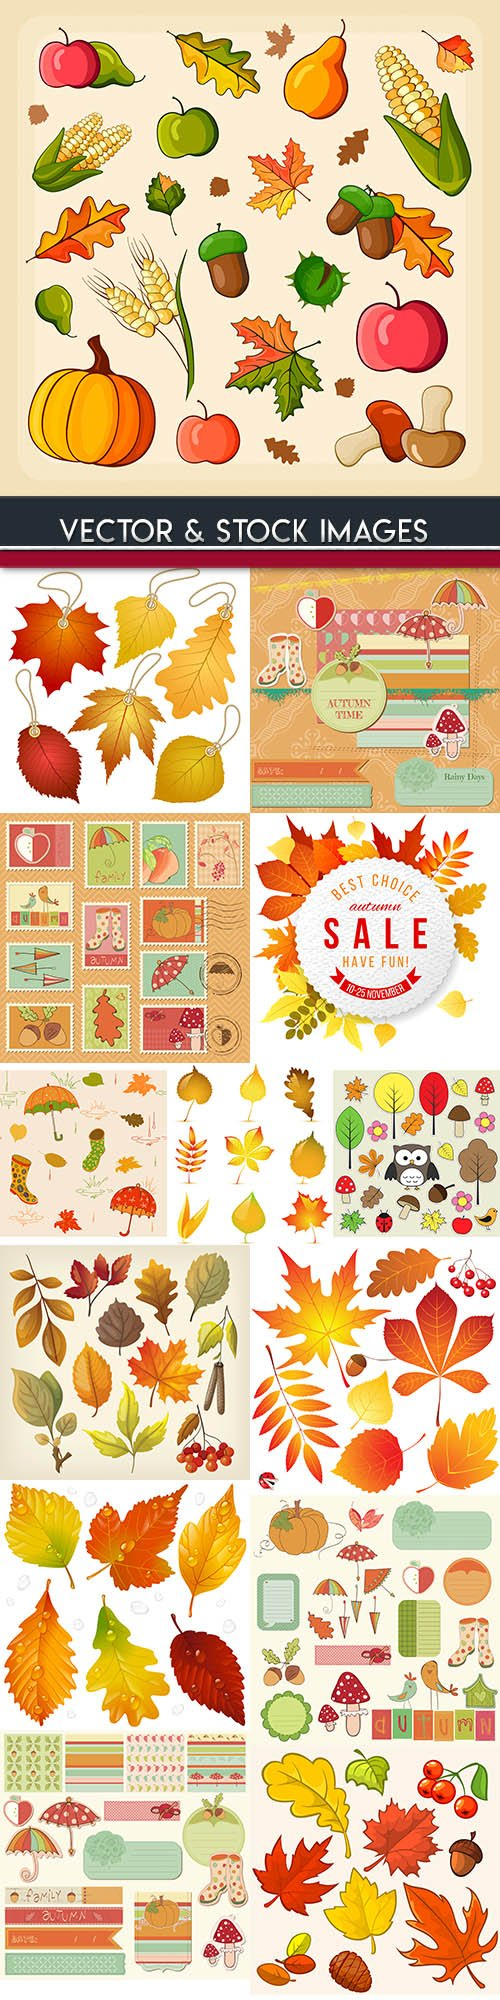 Autumn bright leaves decoration design element